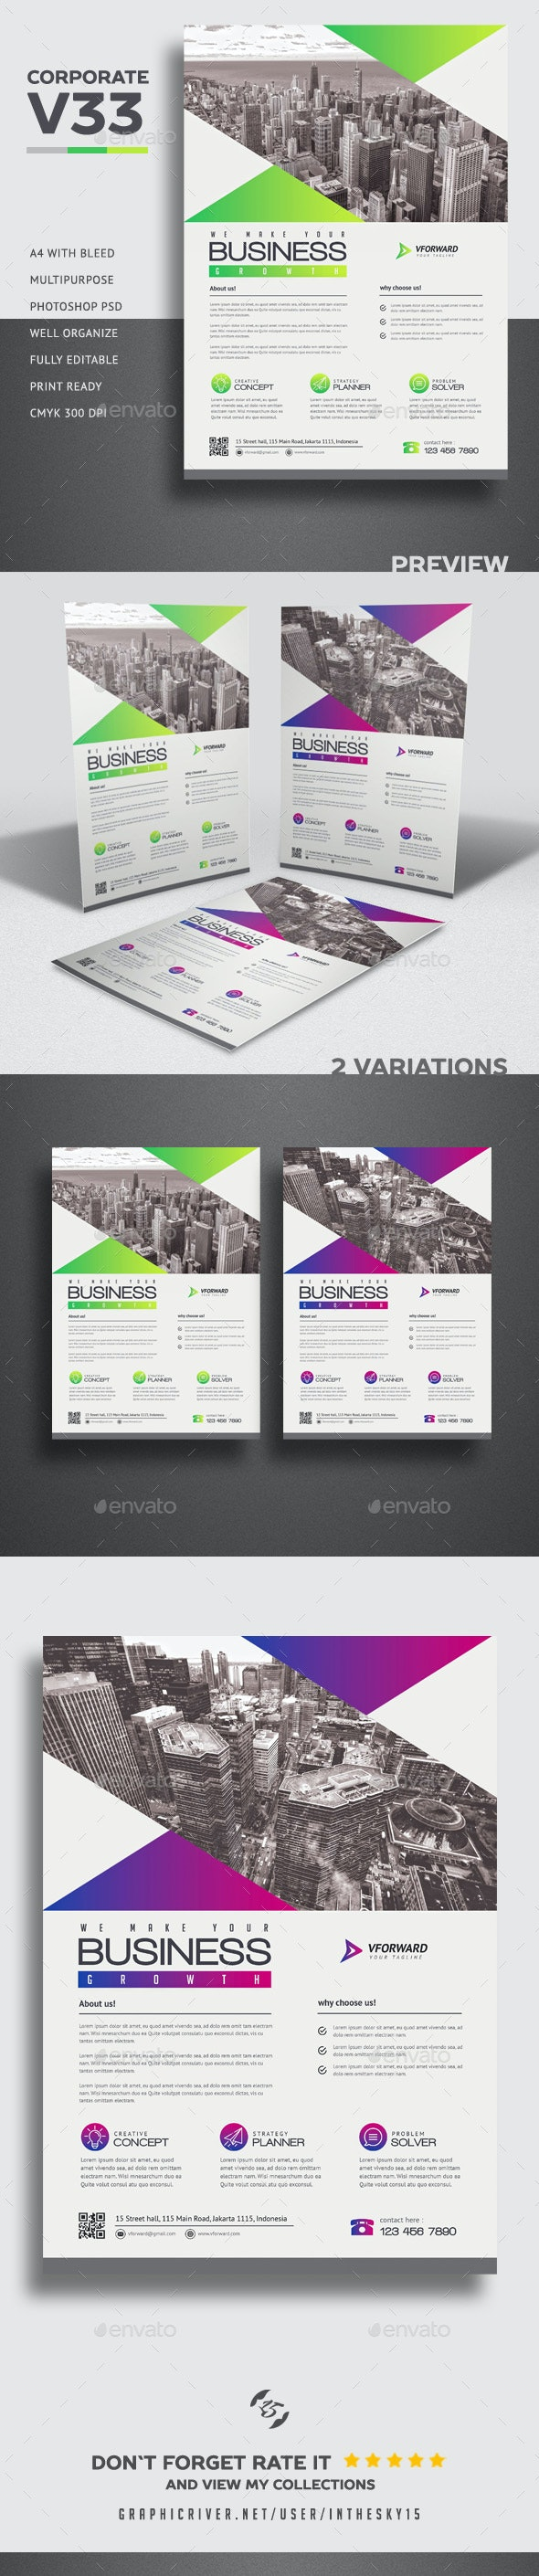 Corporate V33 Flyer - Corporate Flyers